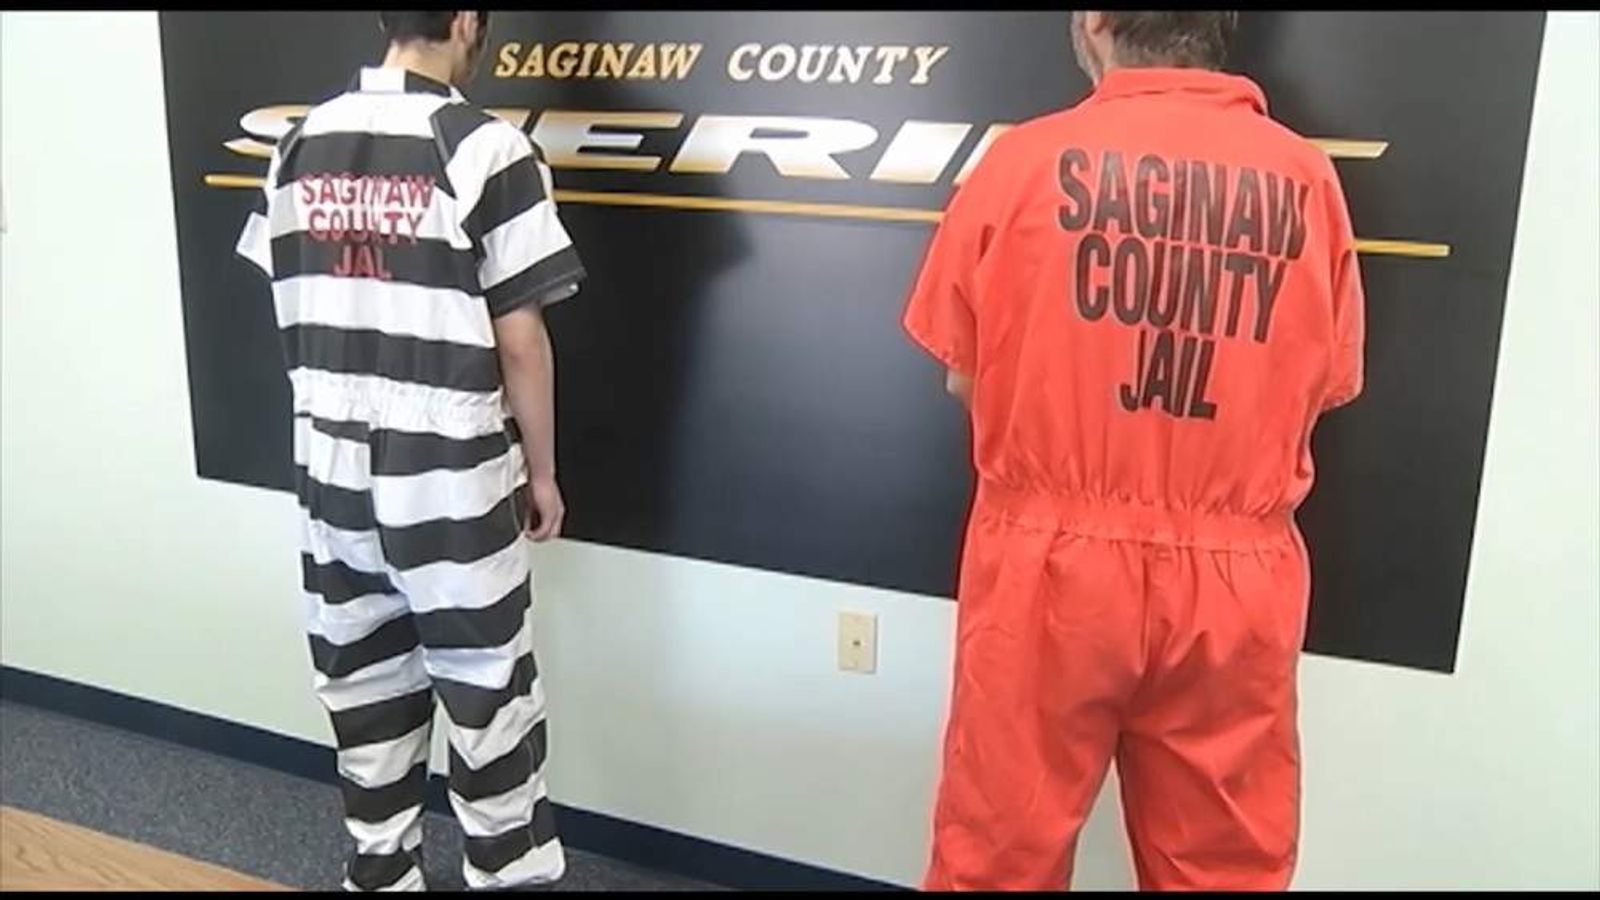 Saginaw County Prison jumpsuits